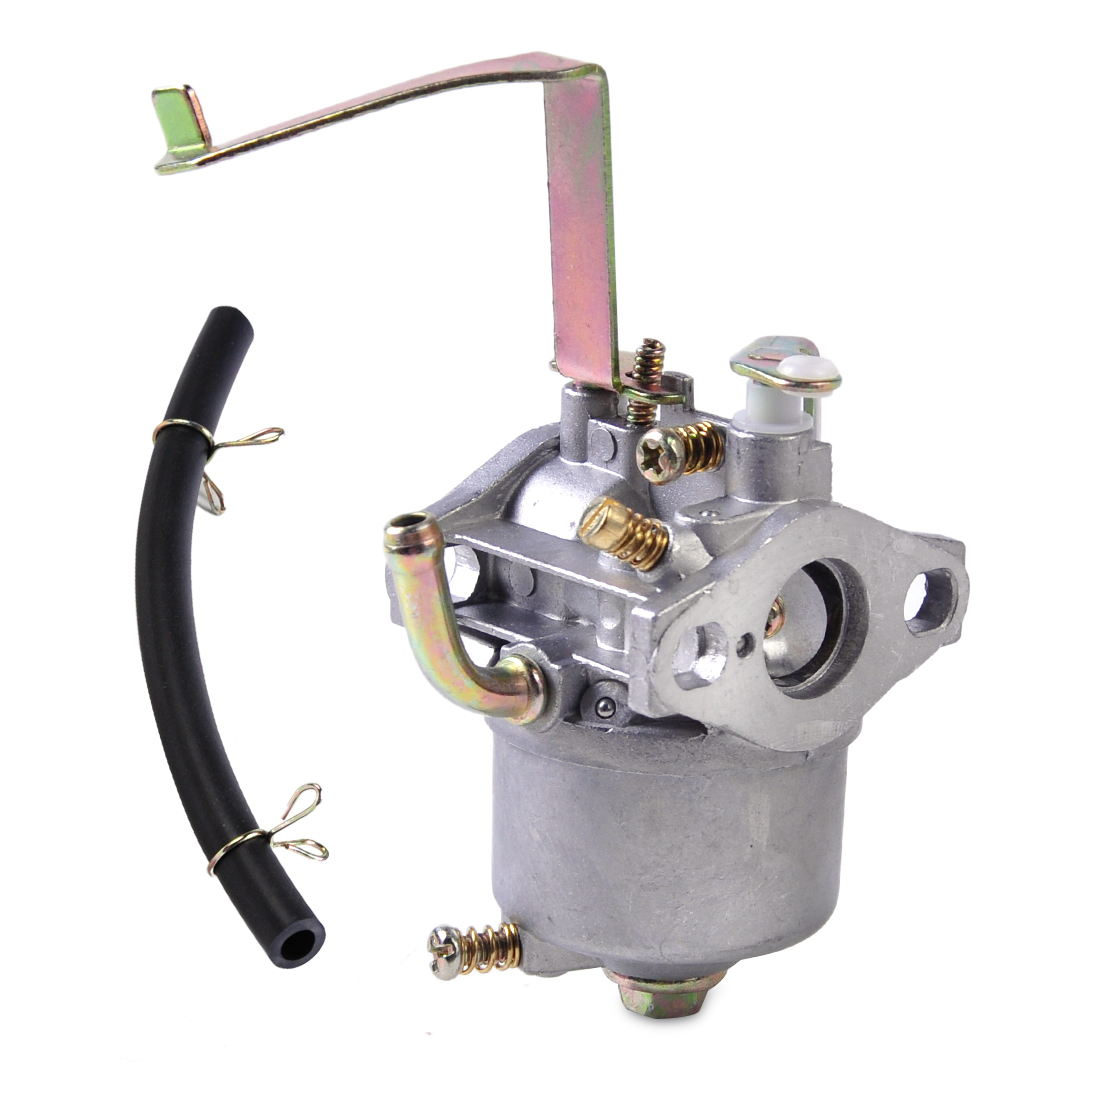 beler Carburetor Carb for Harbor Freight Chicago Electric Storm Cat 63CC 2HP Generator 60338 66619 69381